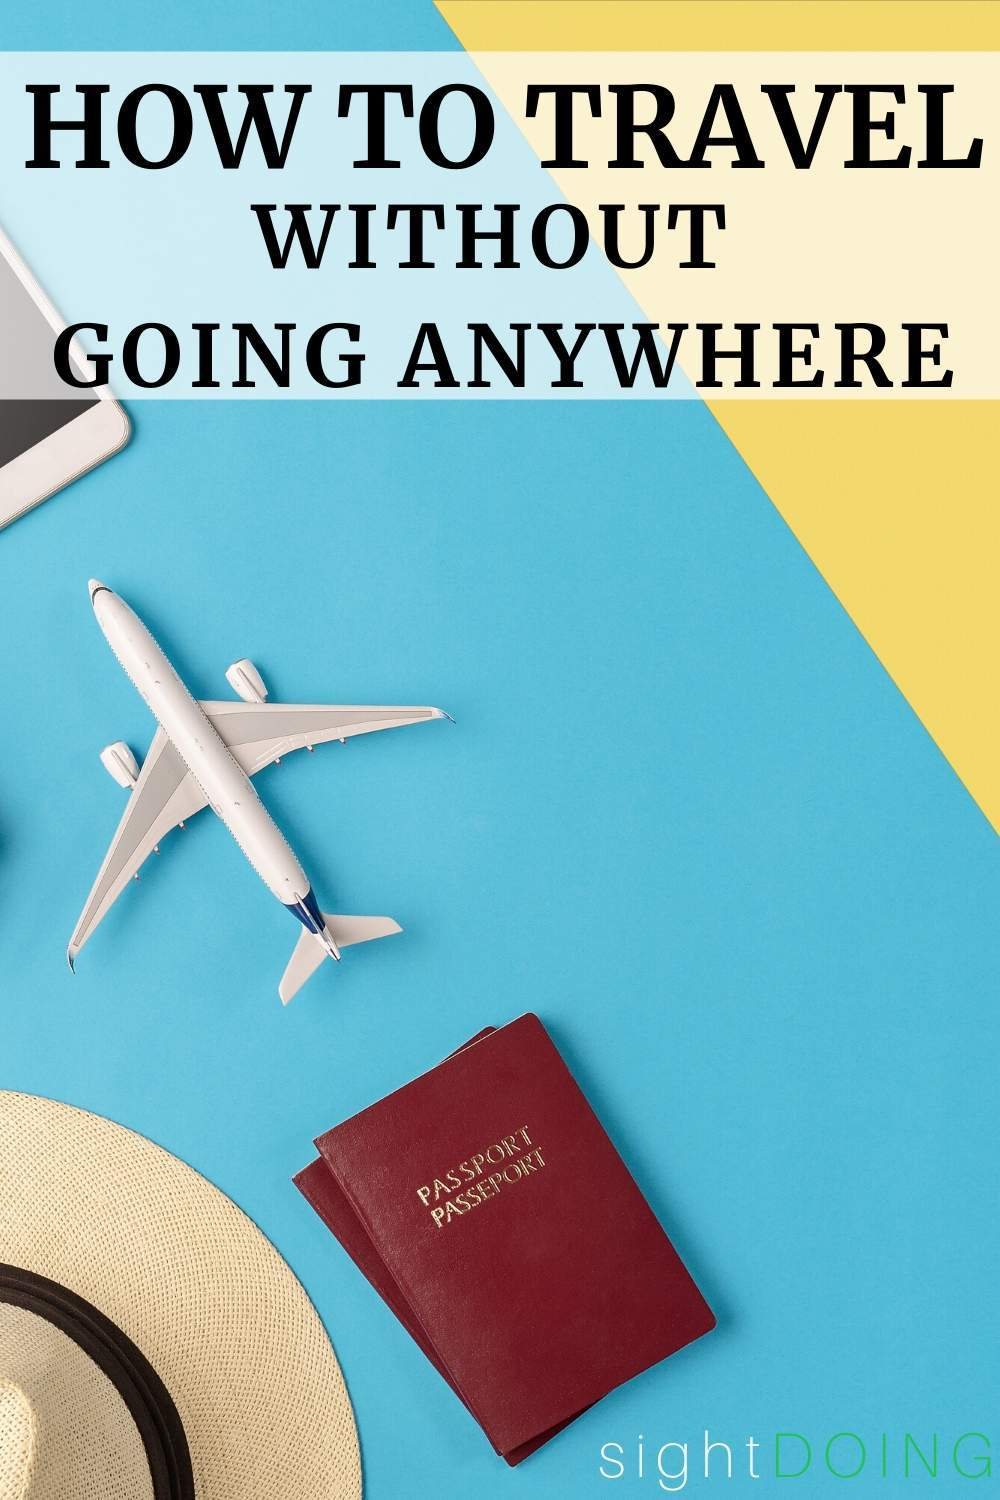 how to travel without going anywhere